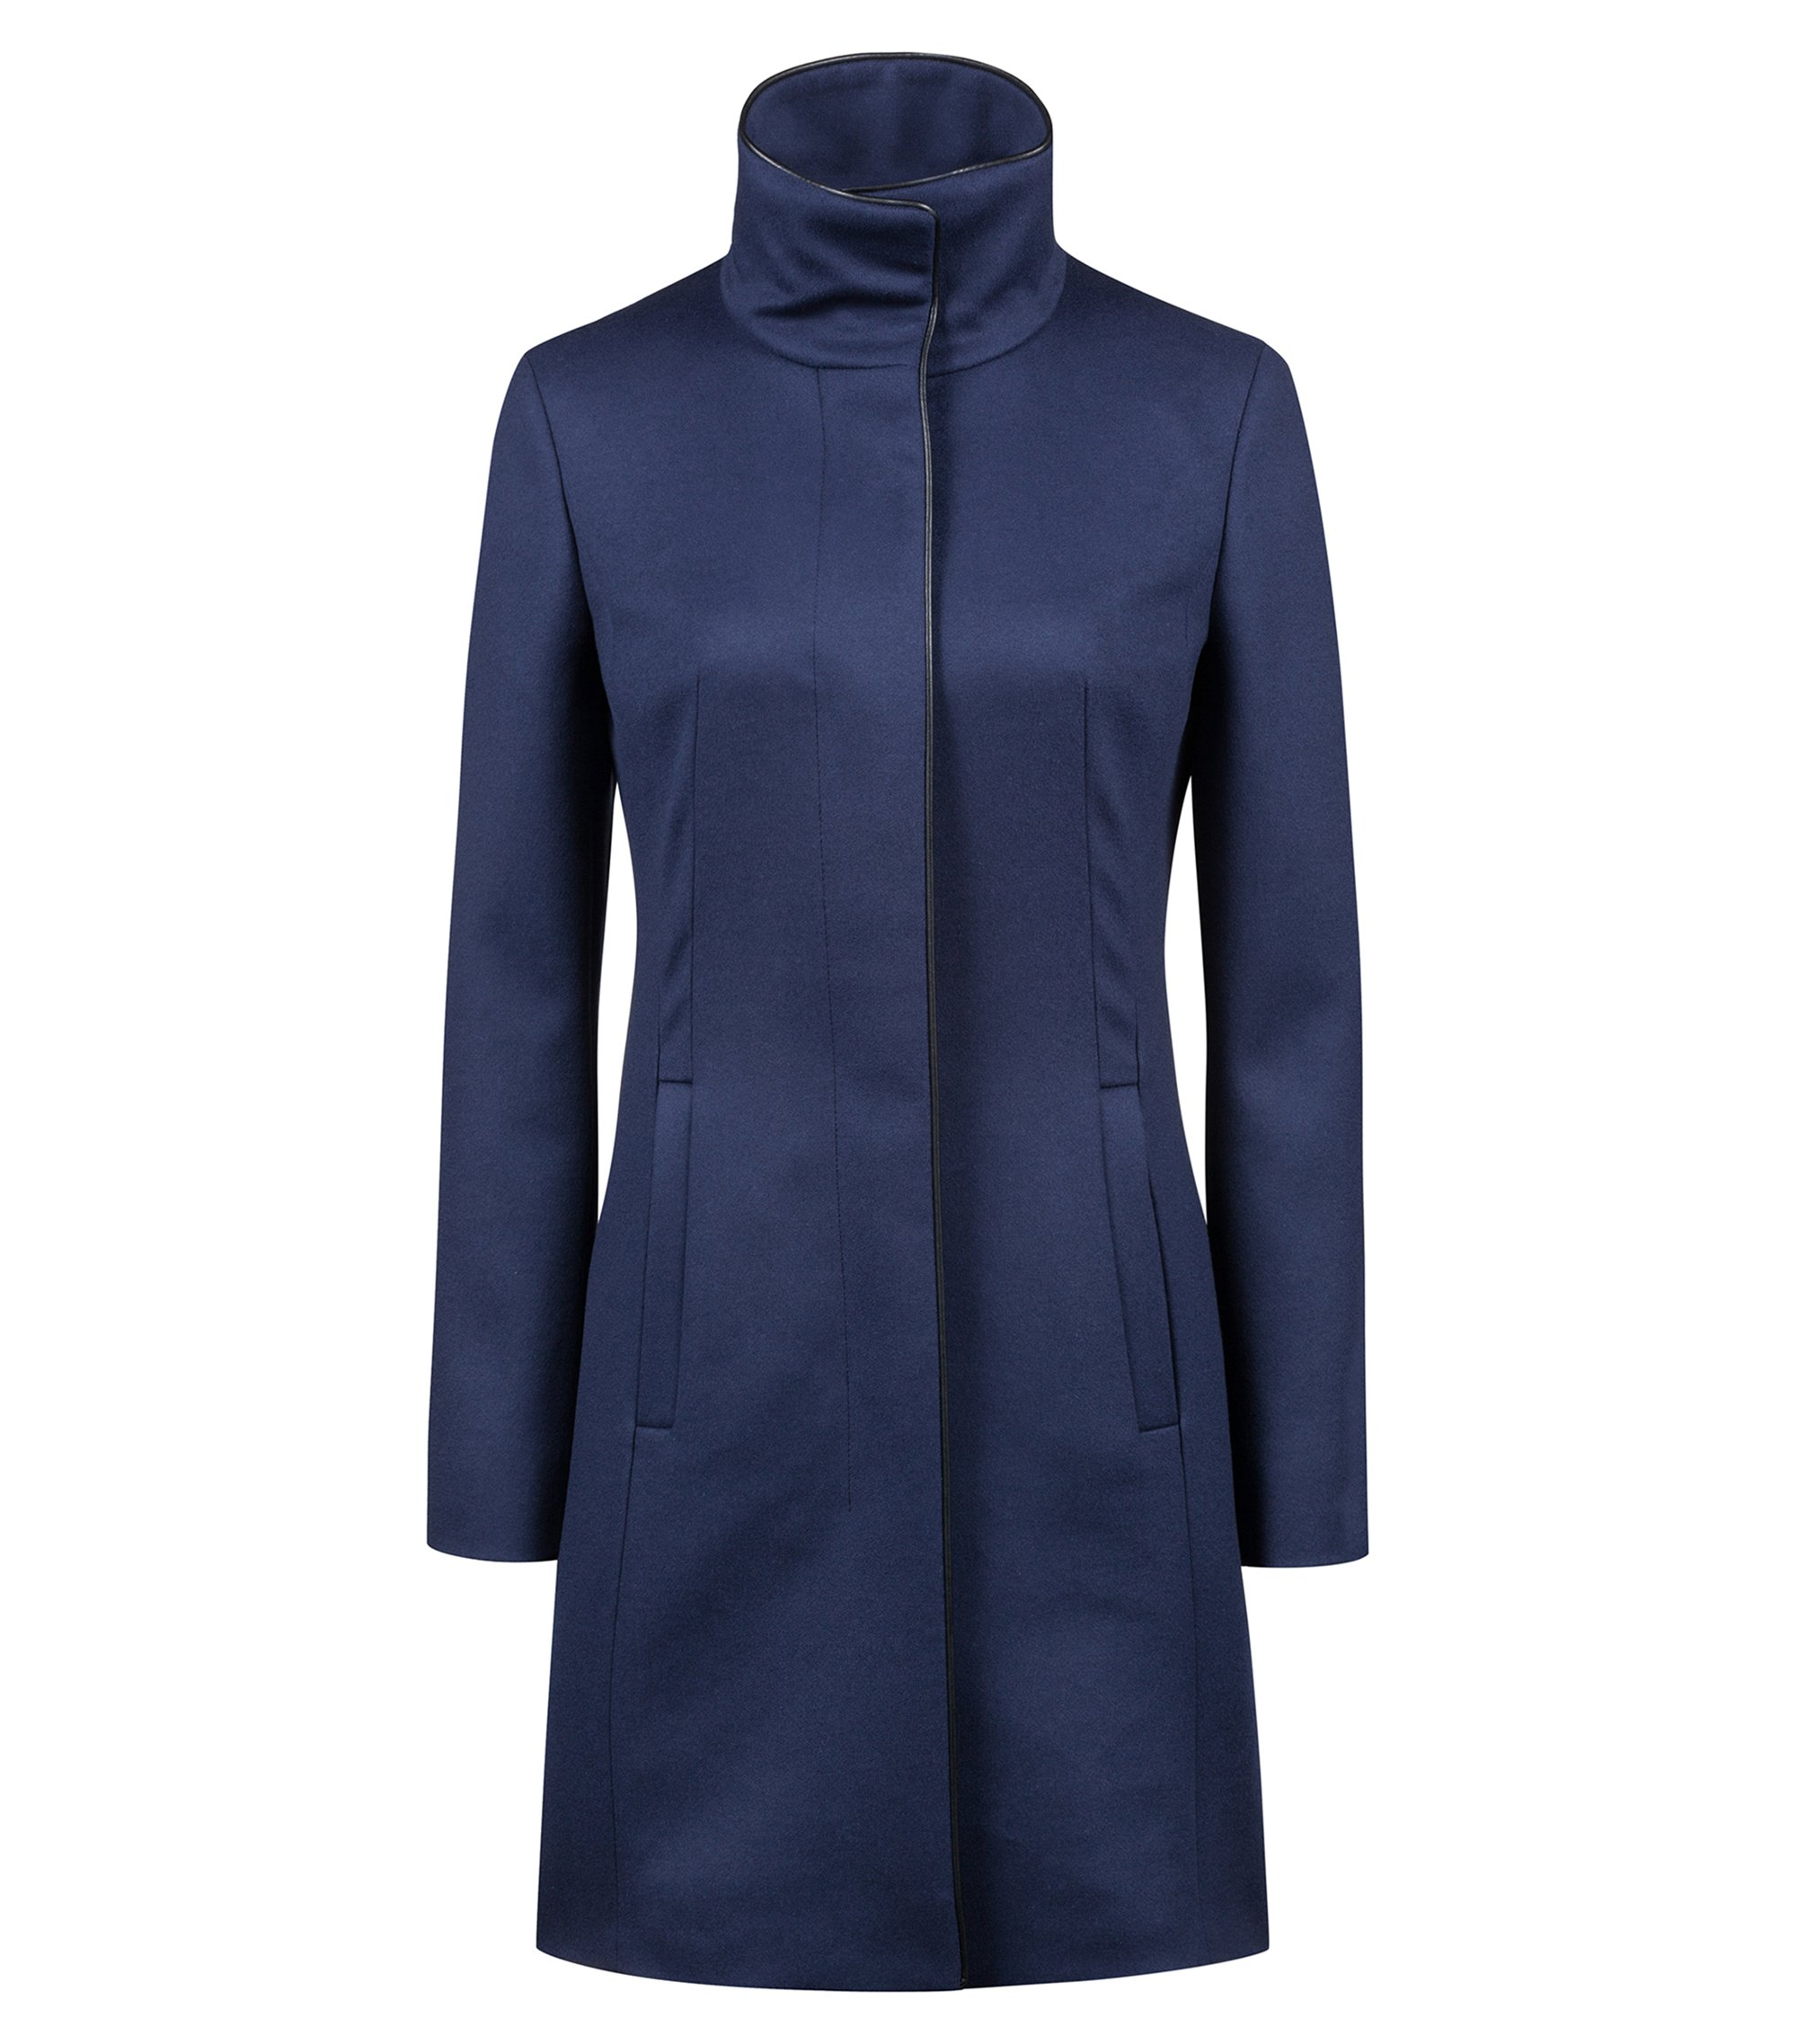 Cappotto slim fit in misto lana vergine con profili, Blu scuro